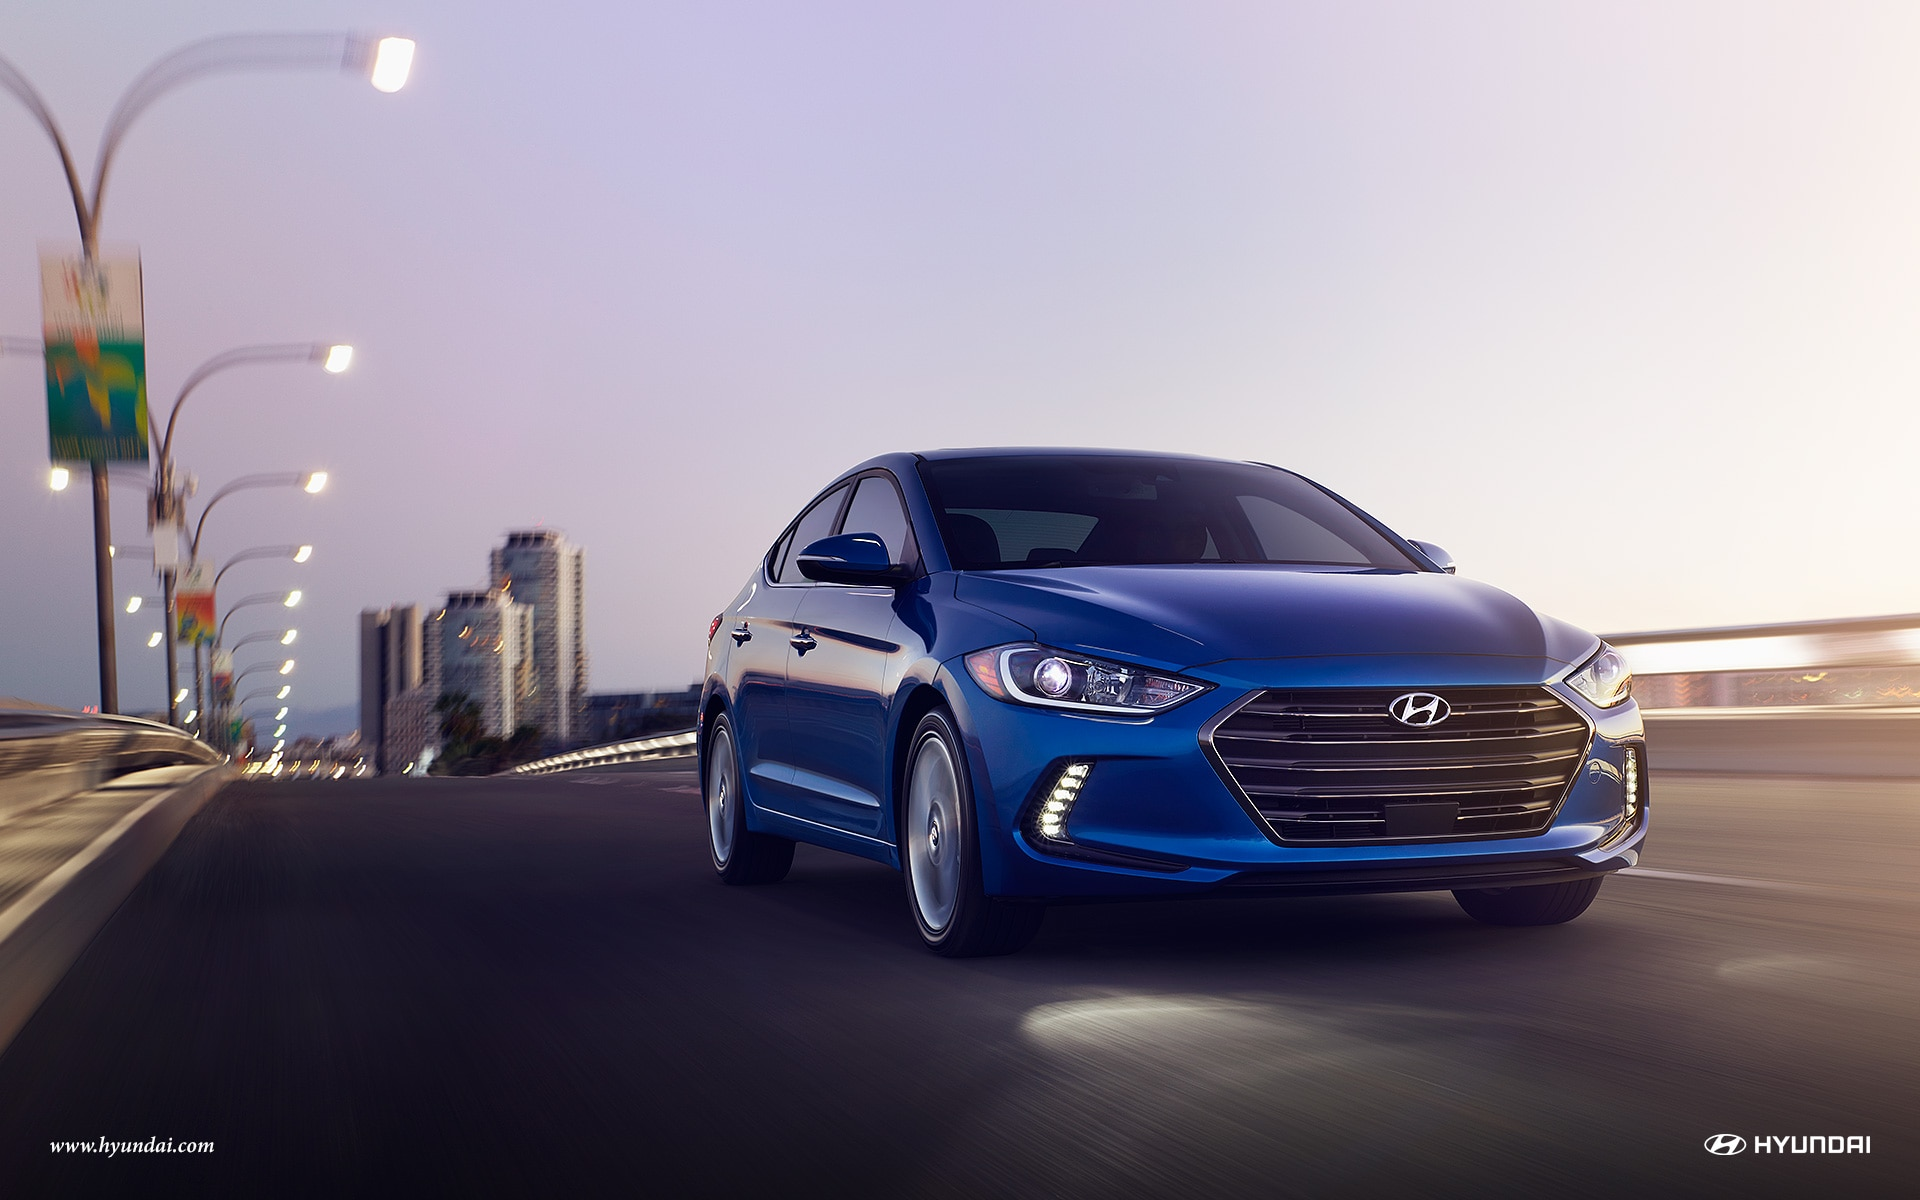 Hyundai Elantra maintenance near Jackson MS